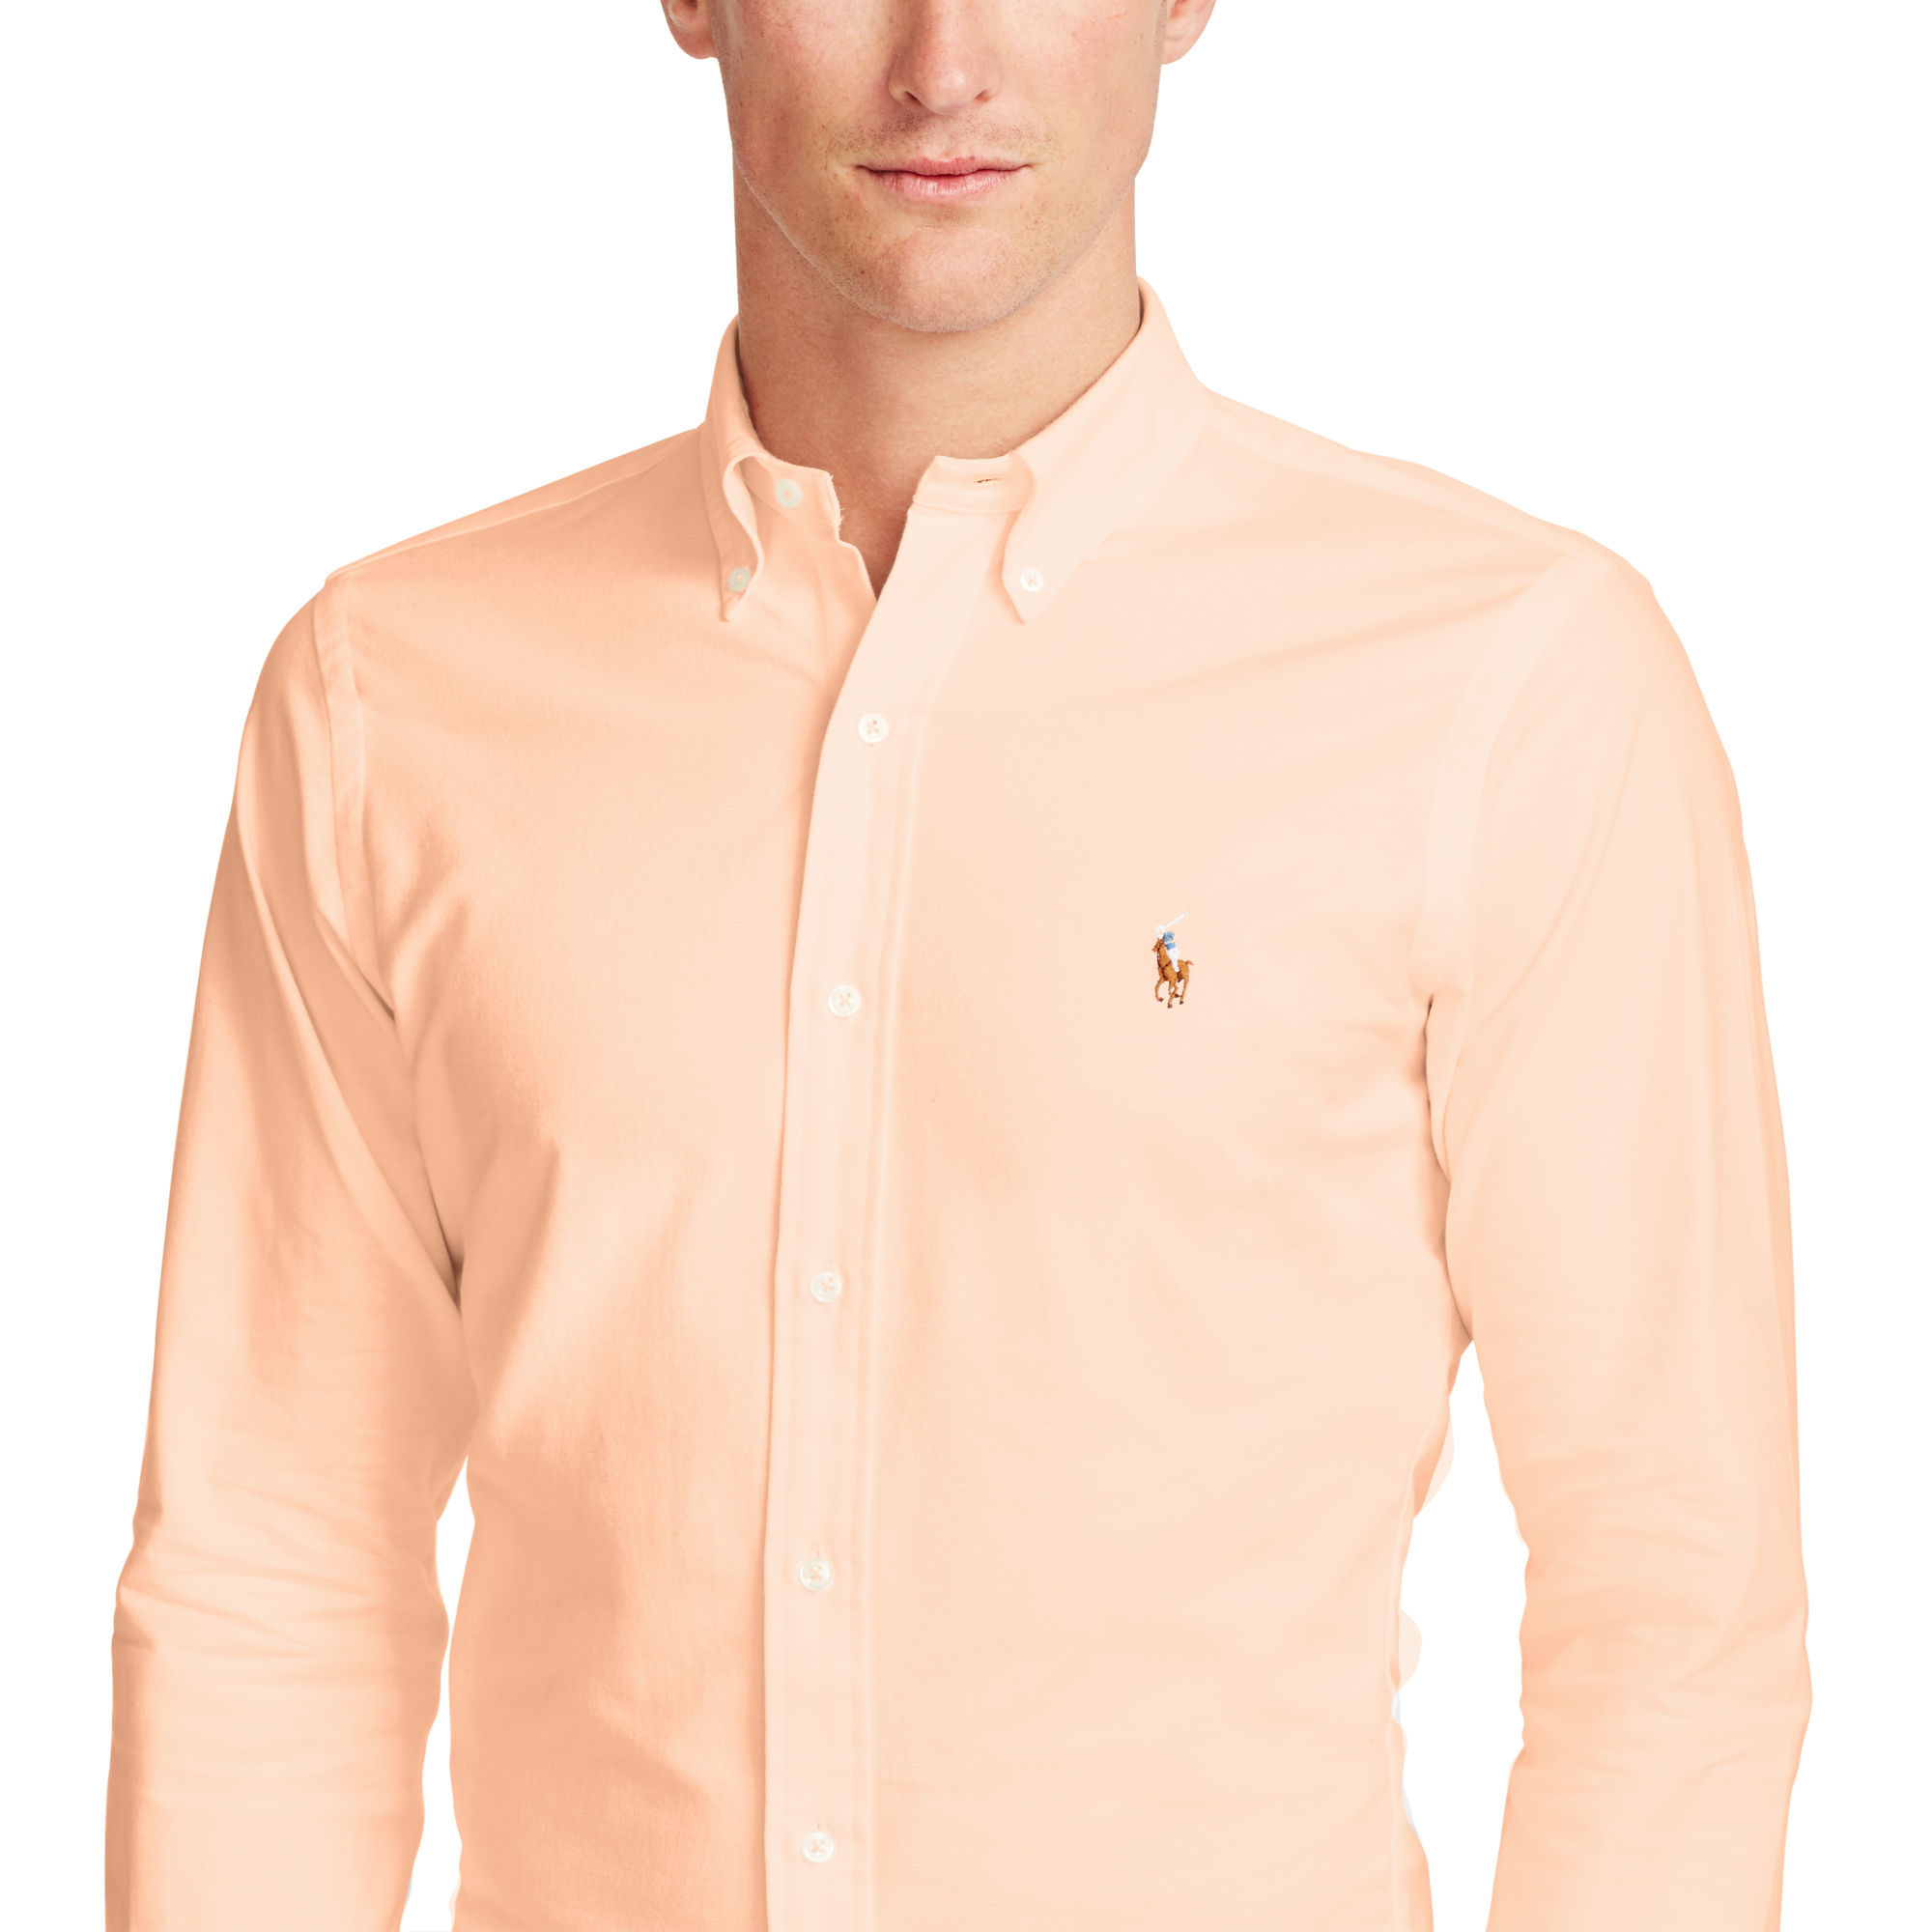 Polo Ralph Lauren Slim-fit Stretch Oxford Shirt in Orange for Men - Lyst 5a9243e4b714